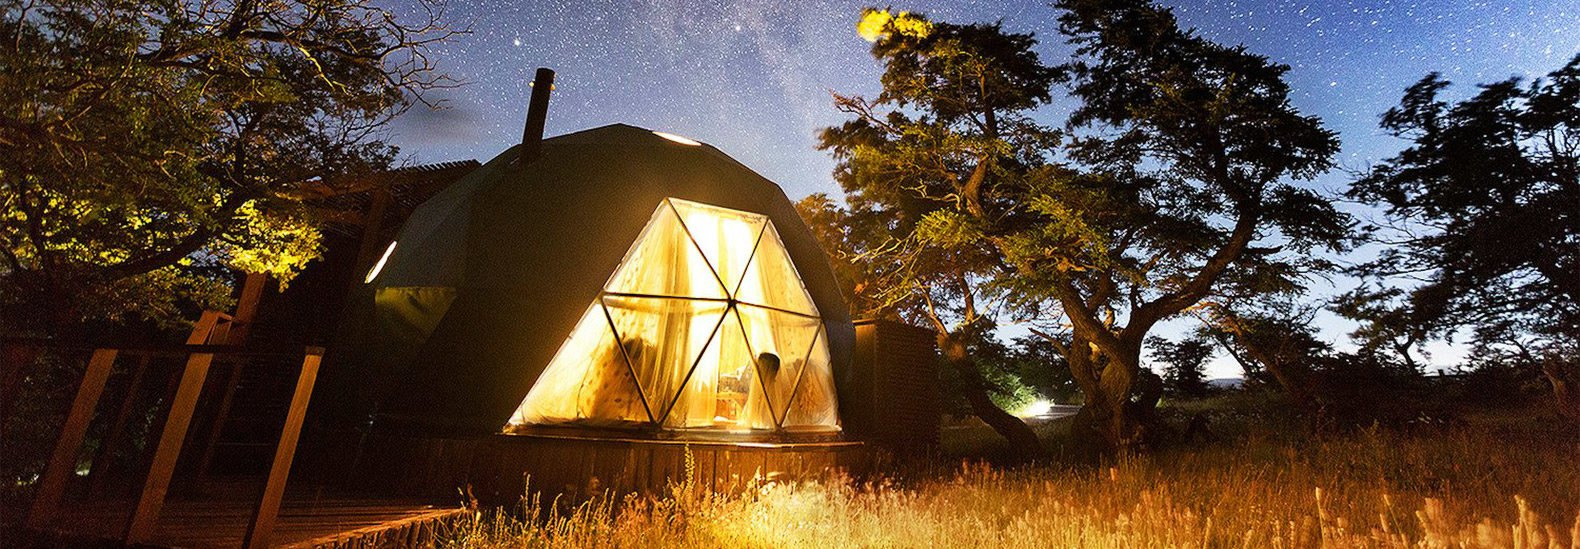 Stay in a cozy geodesic dome at